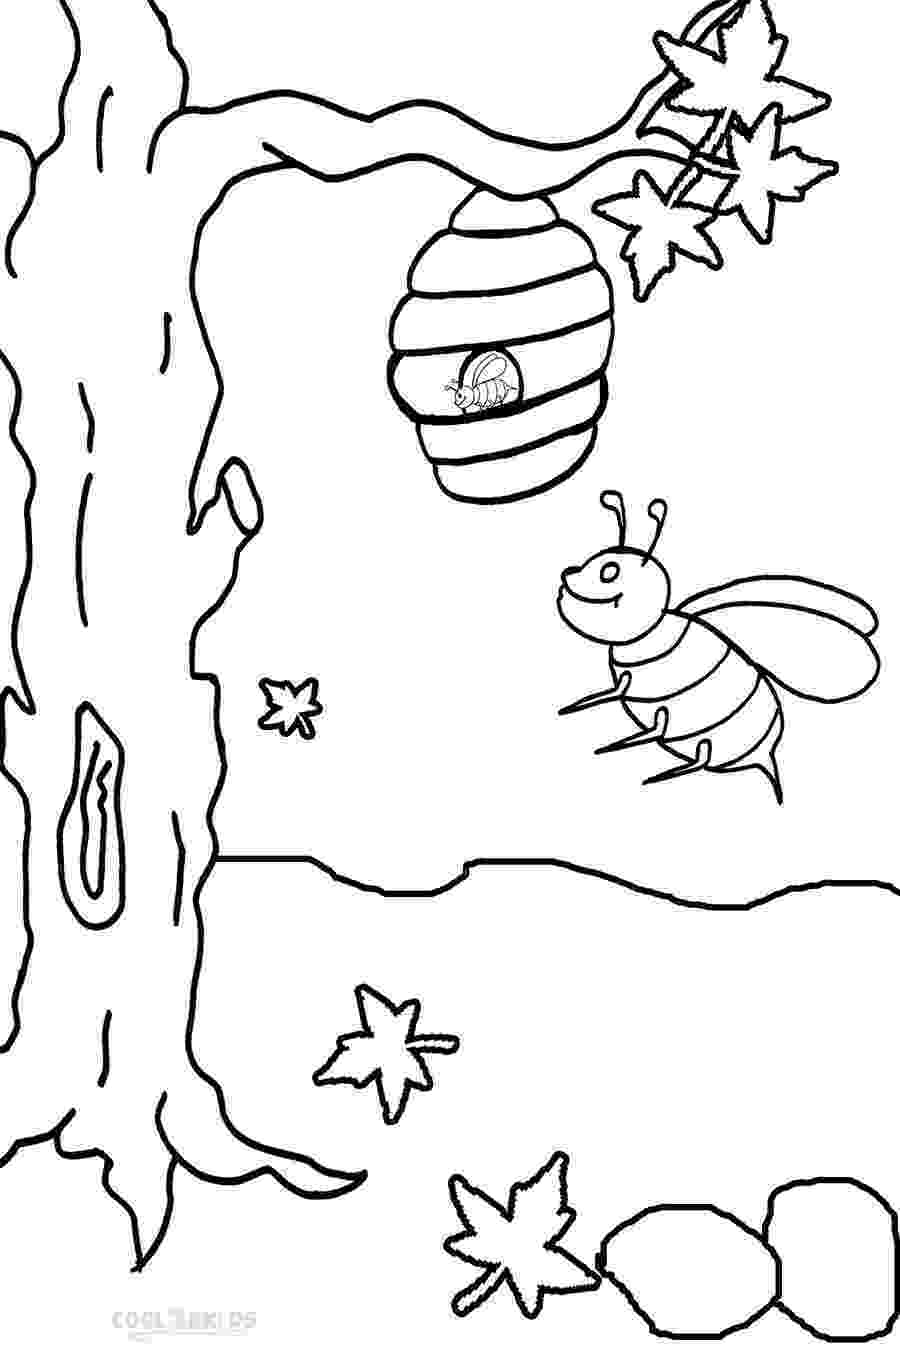 bumble bee coloring pages printable free printable bumble bee coloring pages for kids printable pages bumble coloring bee